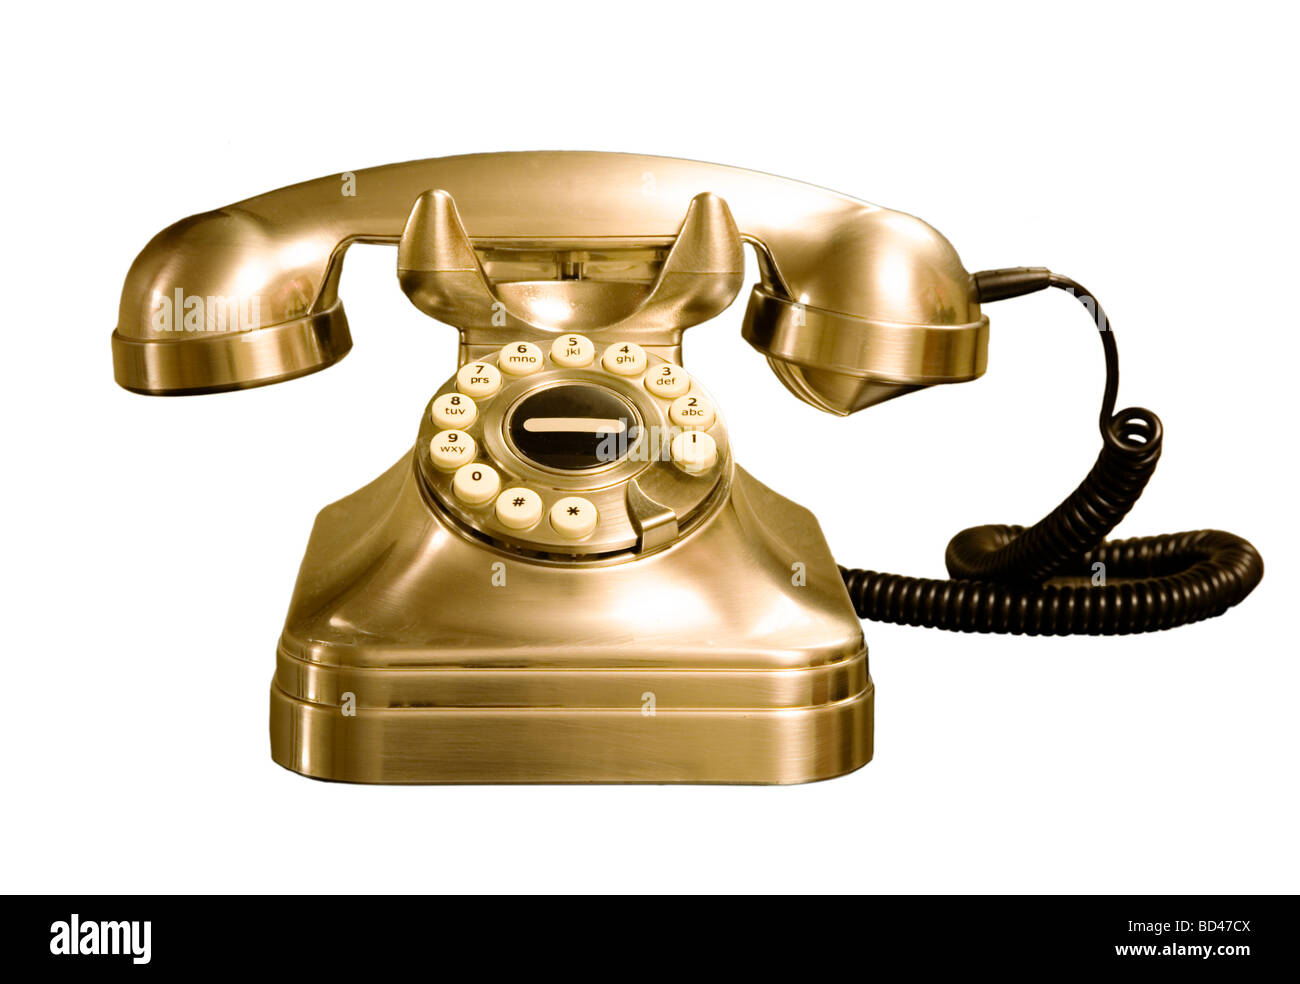 Retro rotary style telephone isolated against a white background with clipping path - Stock Image